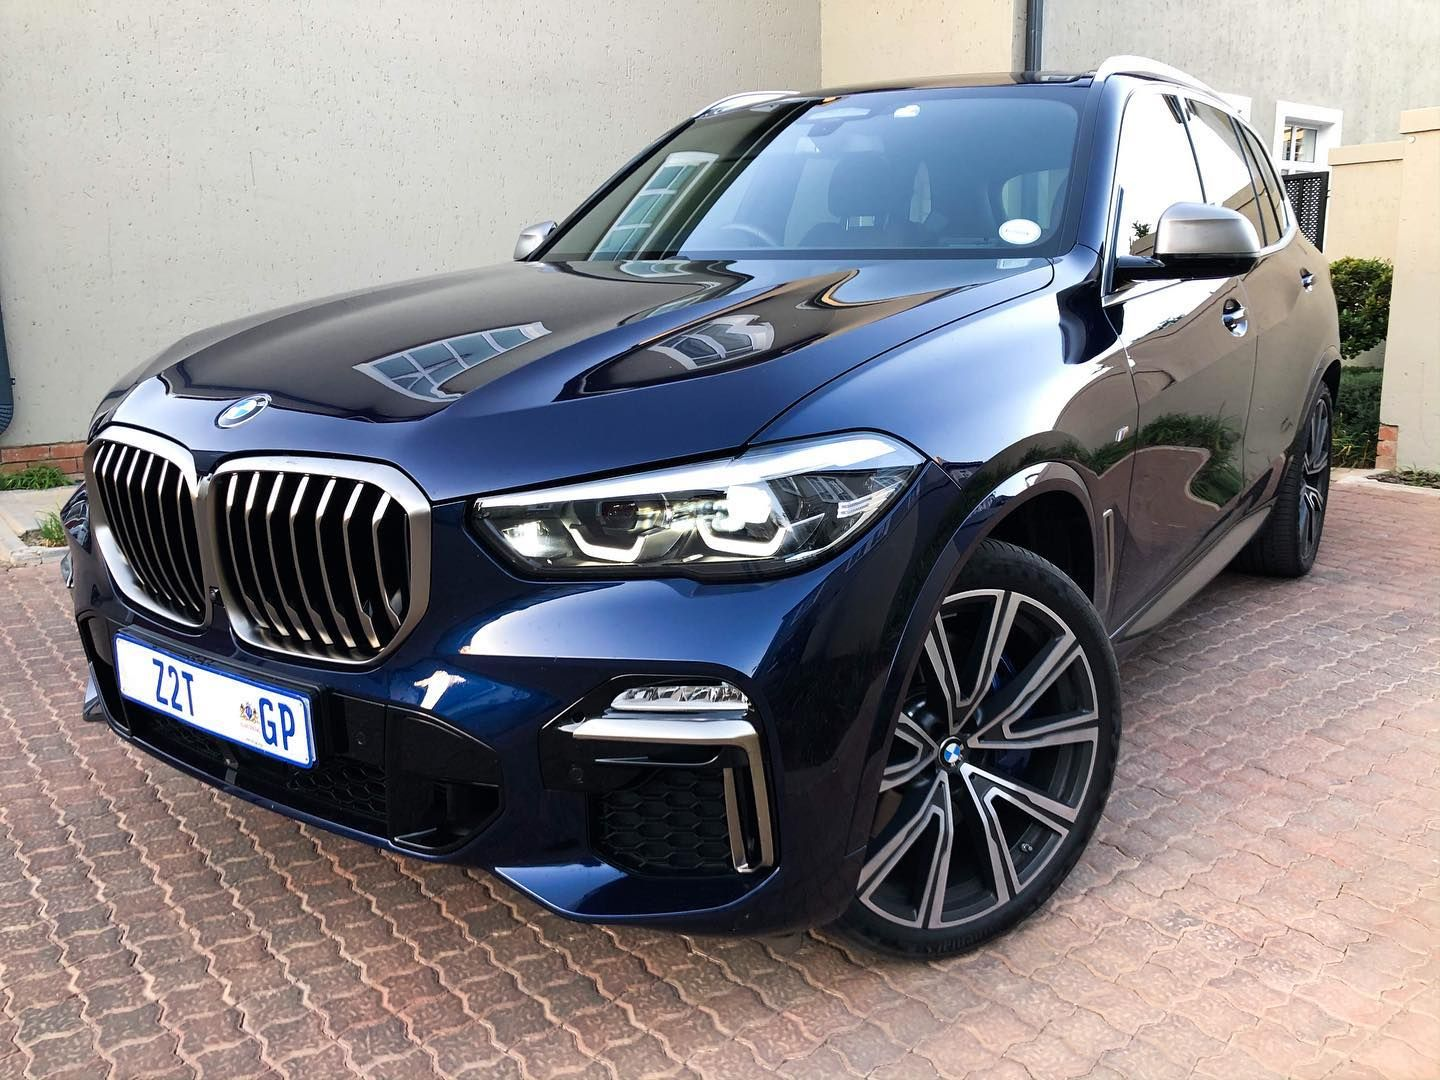 Bmw X5 M50i Take A Bow The Twin Turbo 4 4 Litre V8 Delivers A Potent 390 Kw And 750 Nm Which Is Plenty Get Up And Go For Day To Day Dr In 2020